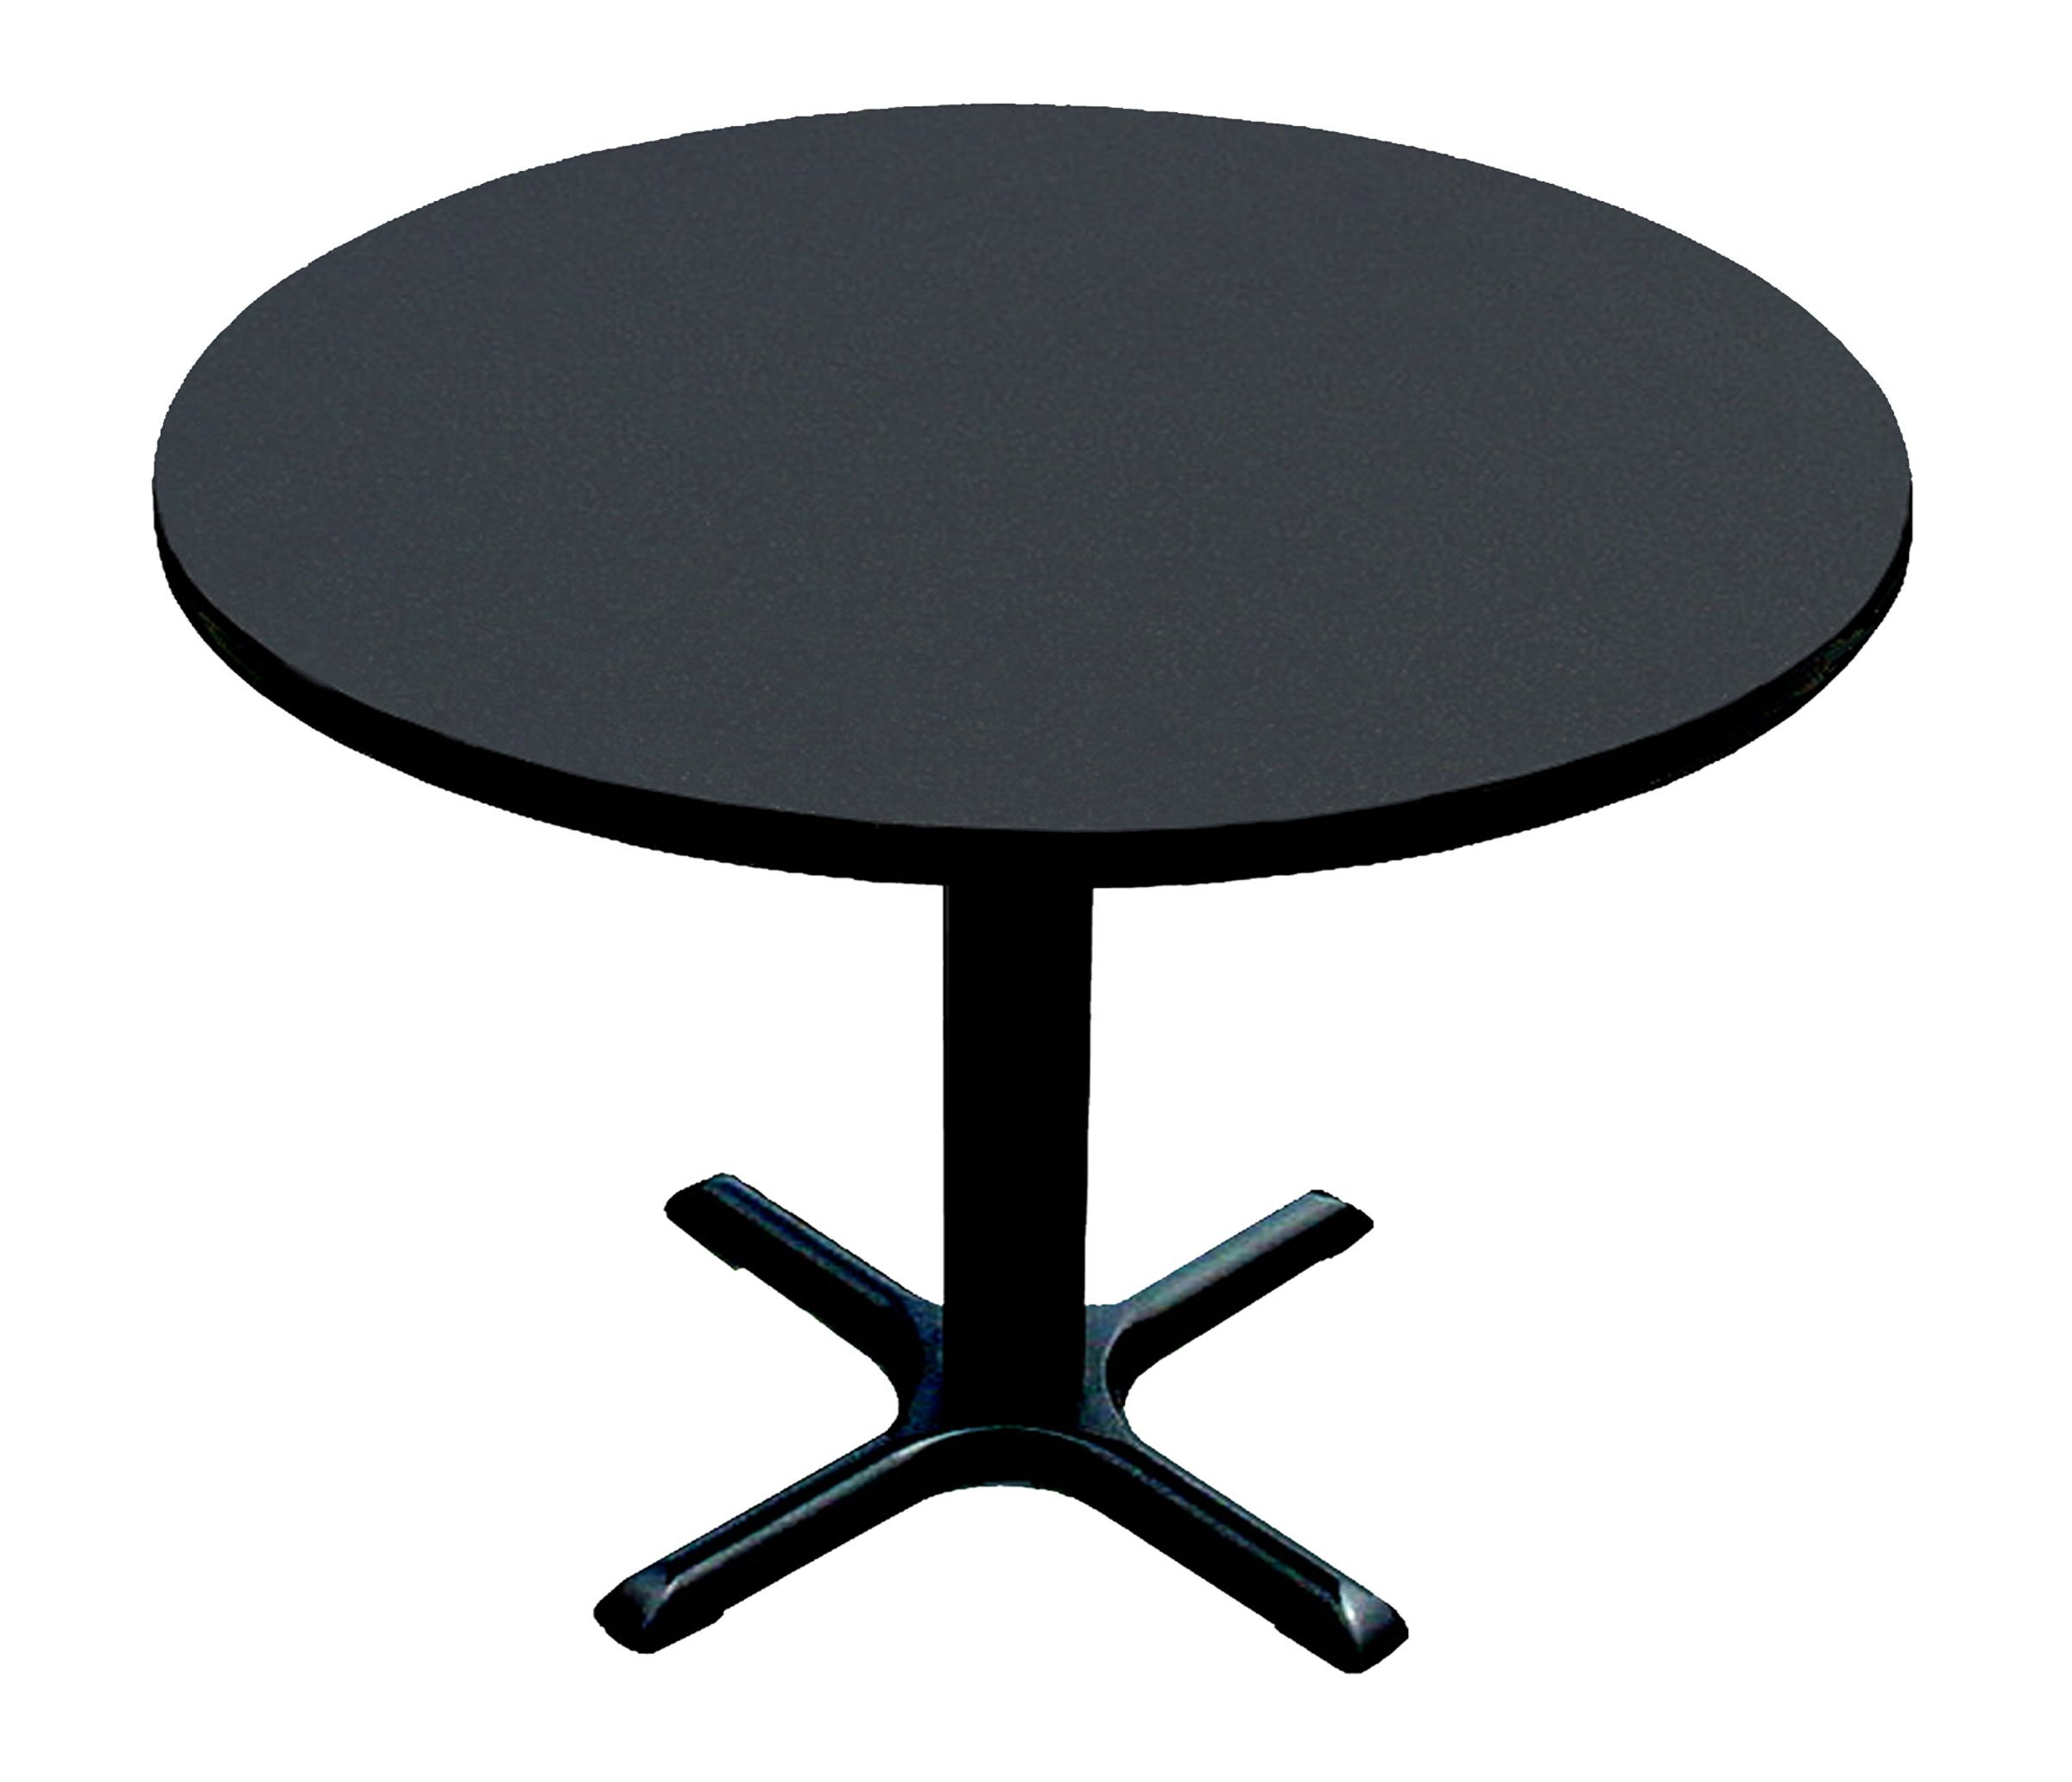 Correll BXT48R-07 Black Granite Top and Black Base Round Bar, Café and Break Room Table, 48'' by Correll